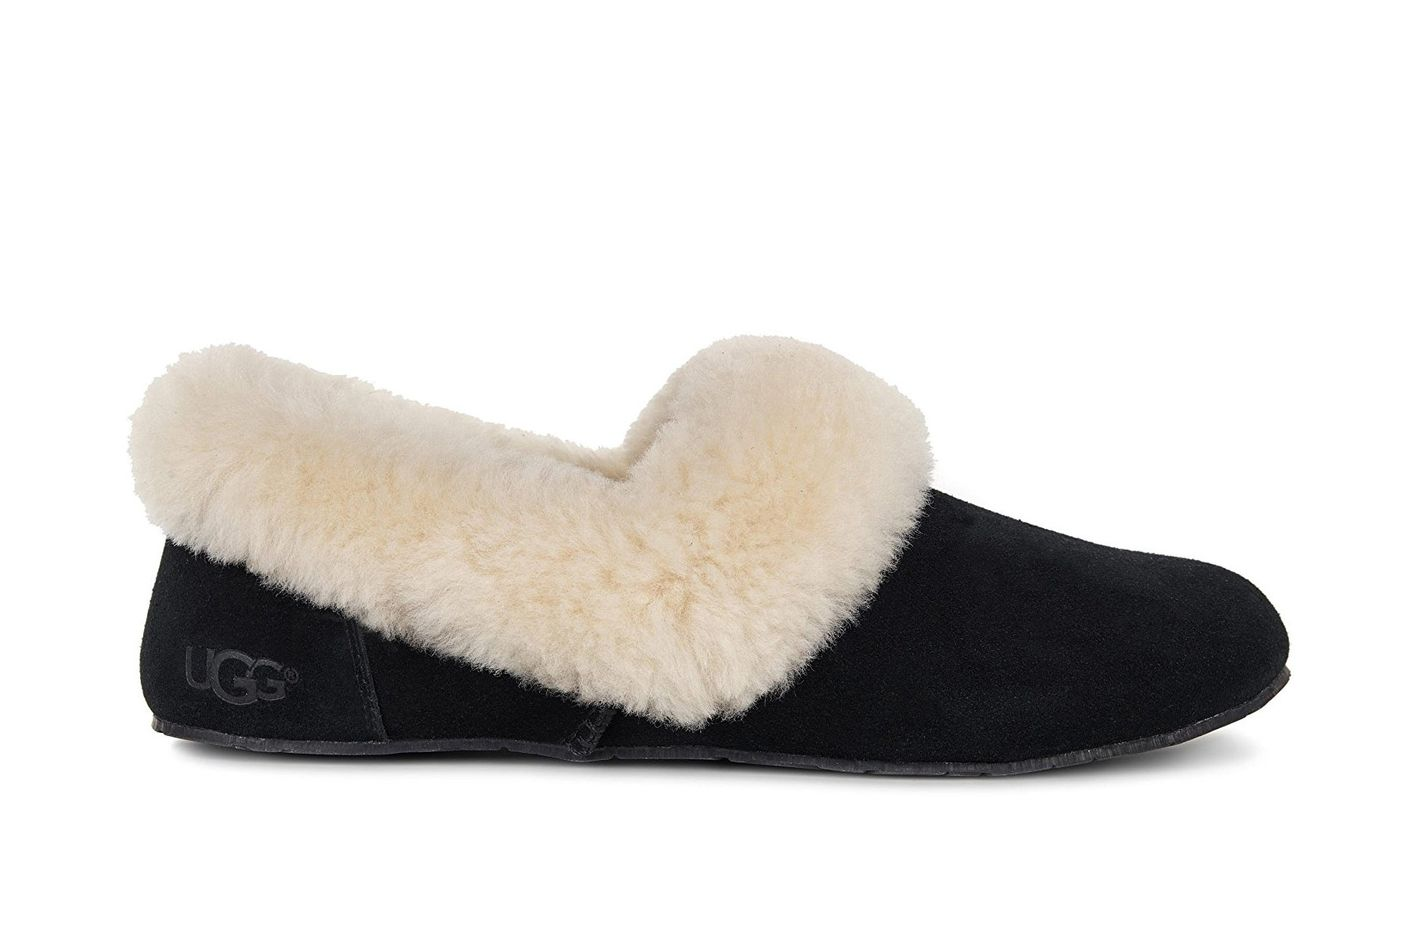 UGG Women's Kendyl Slipper